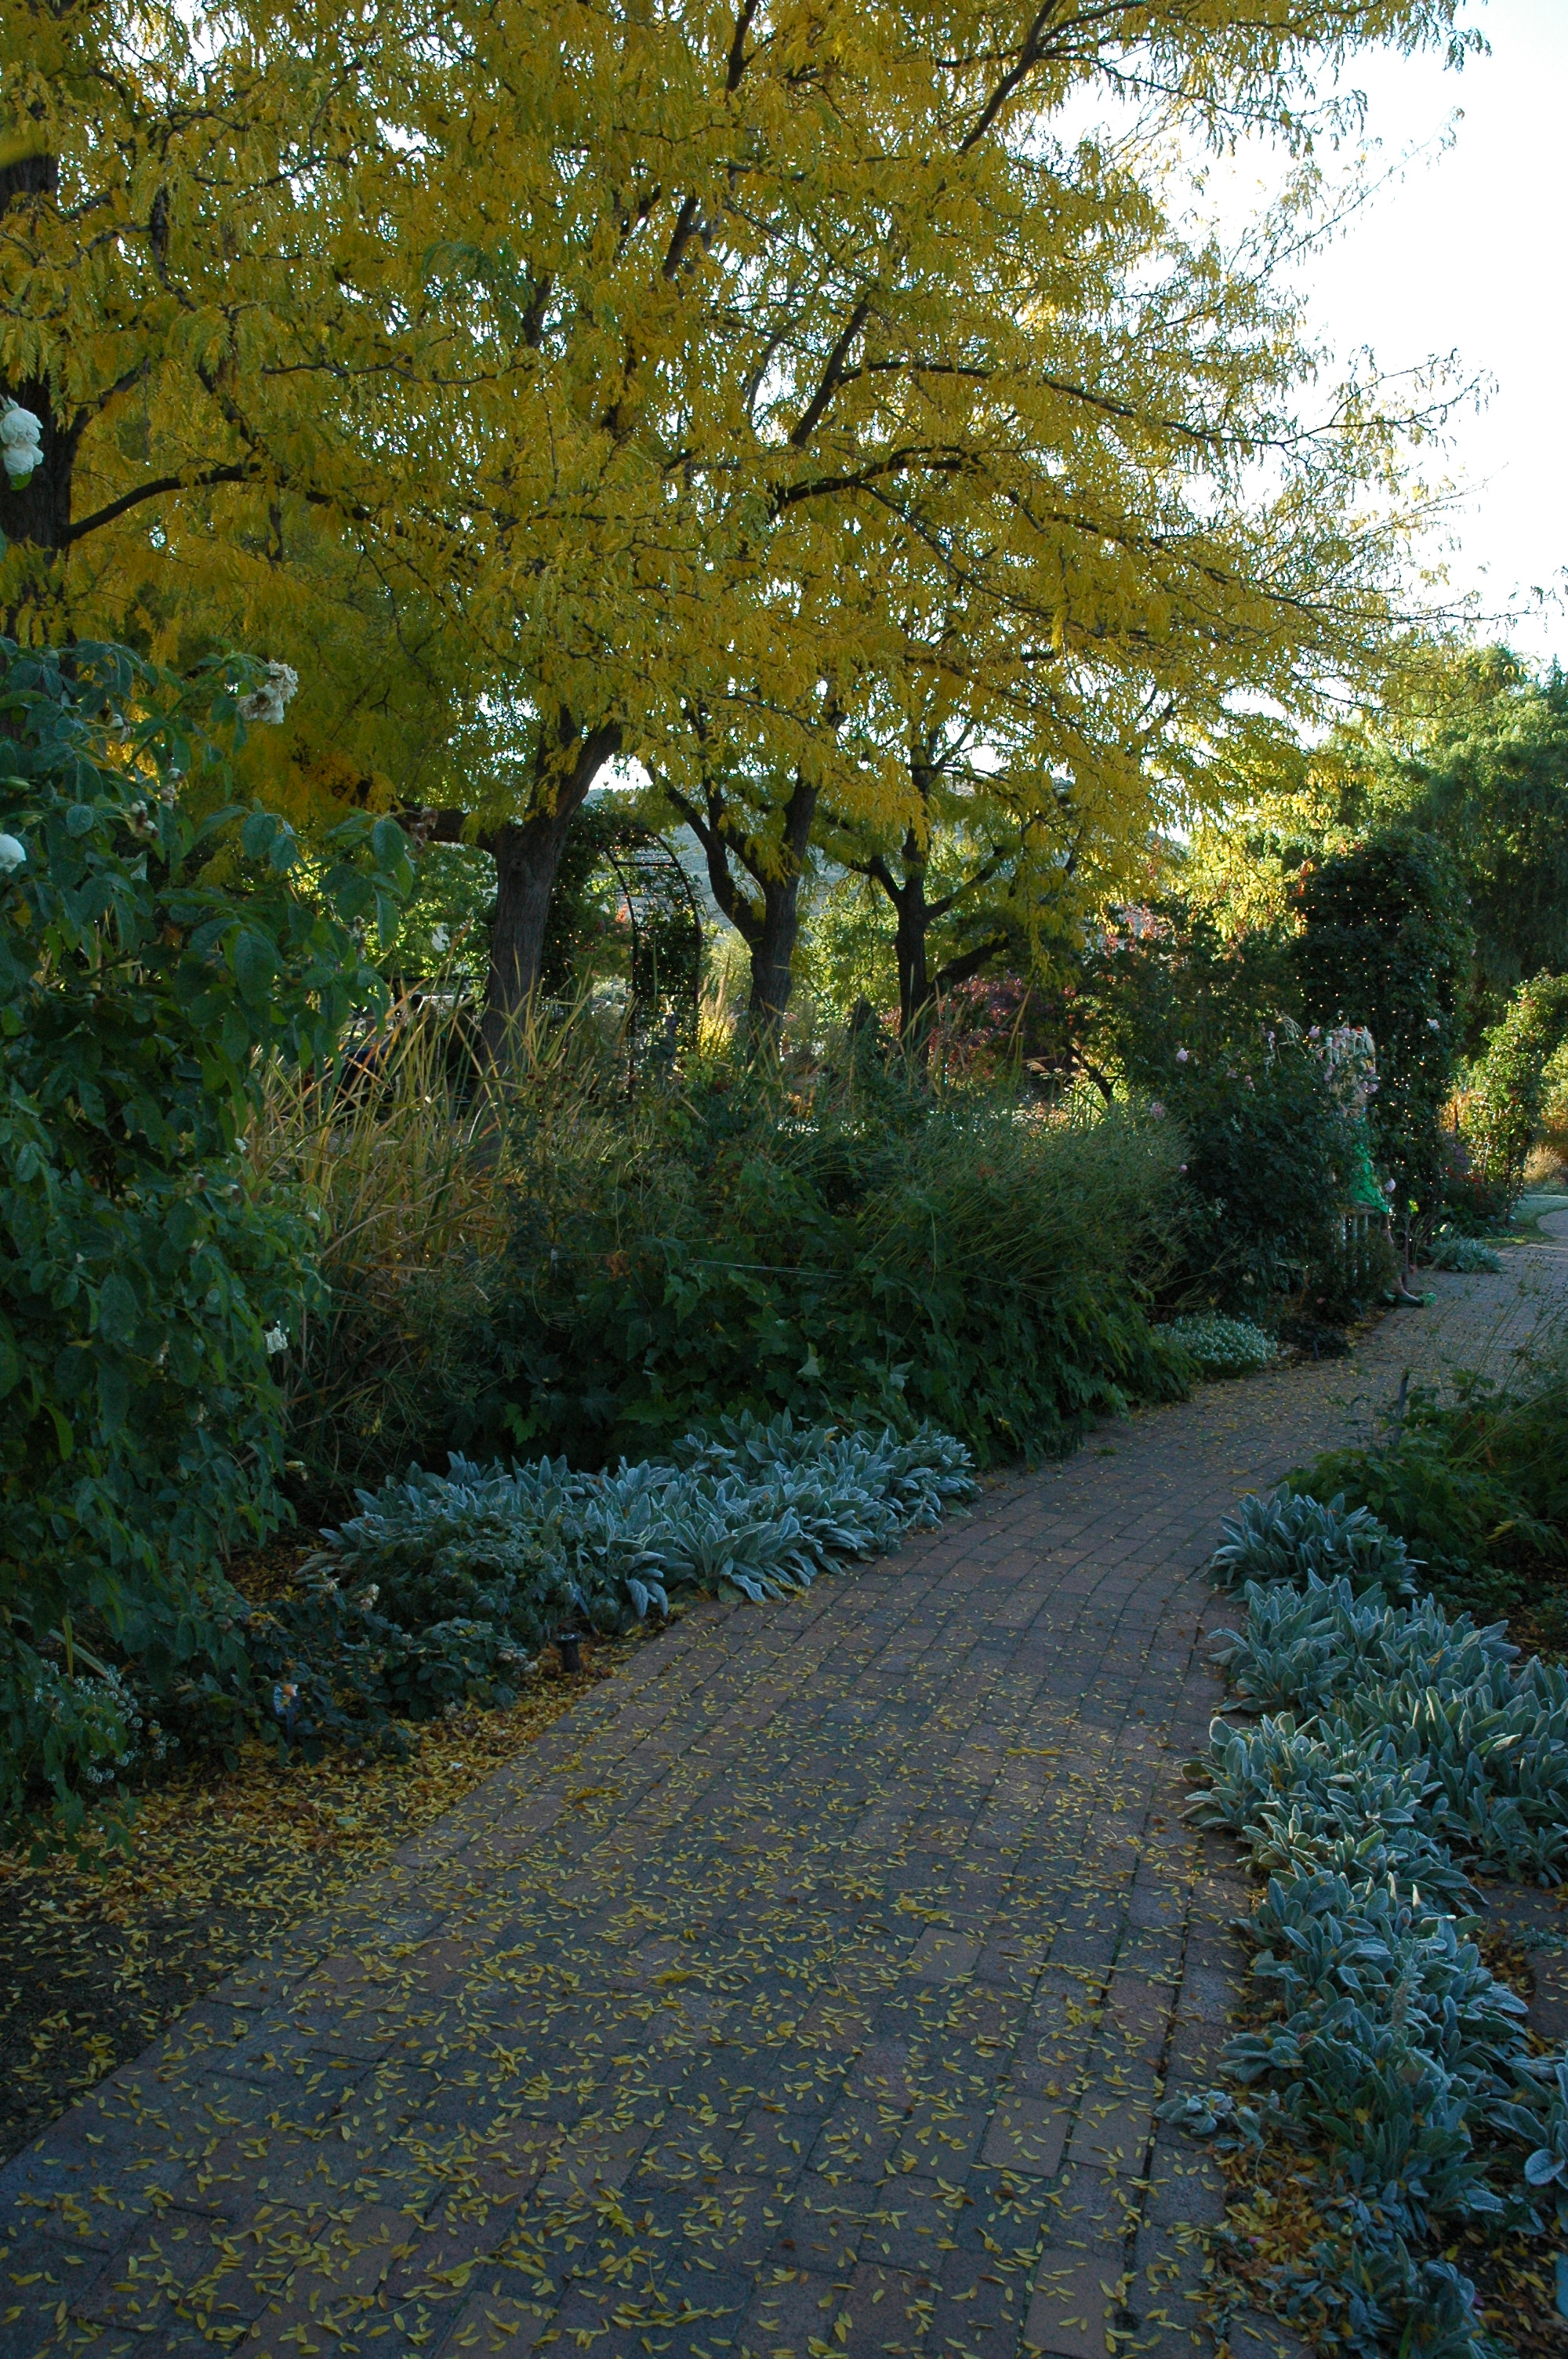 Pathway at the Idaho Botanical Garden